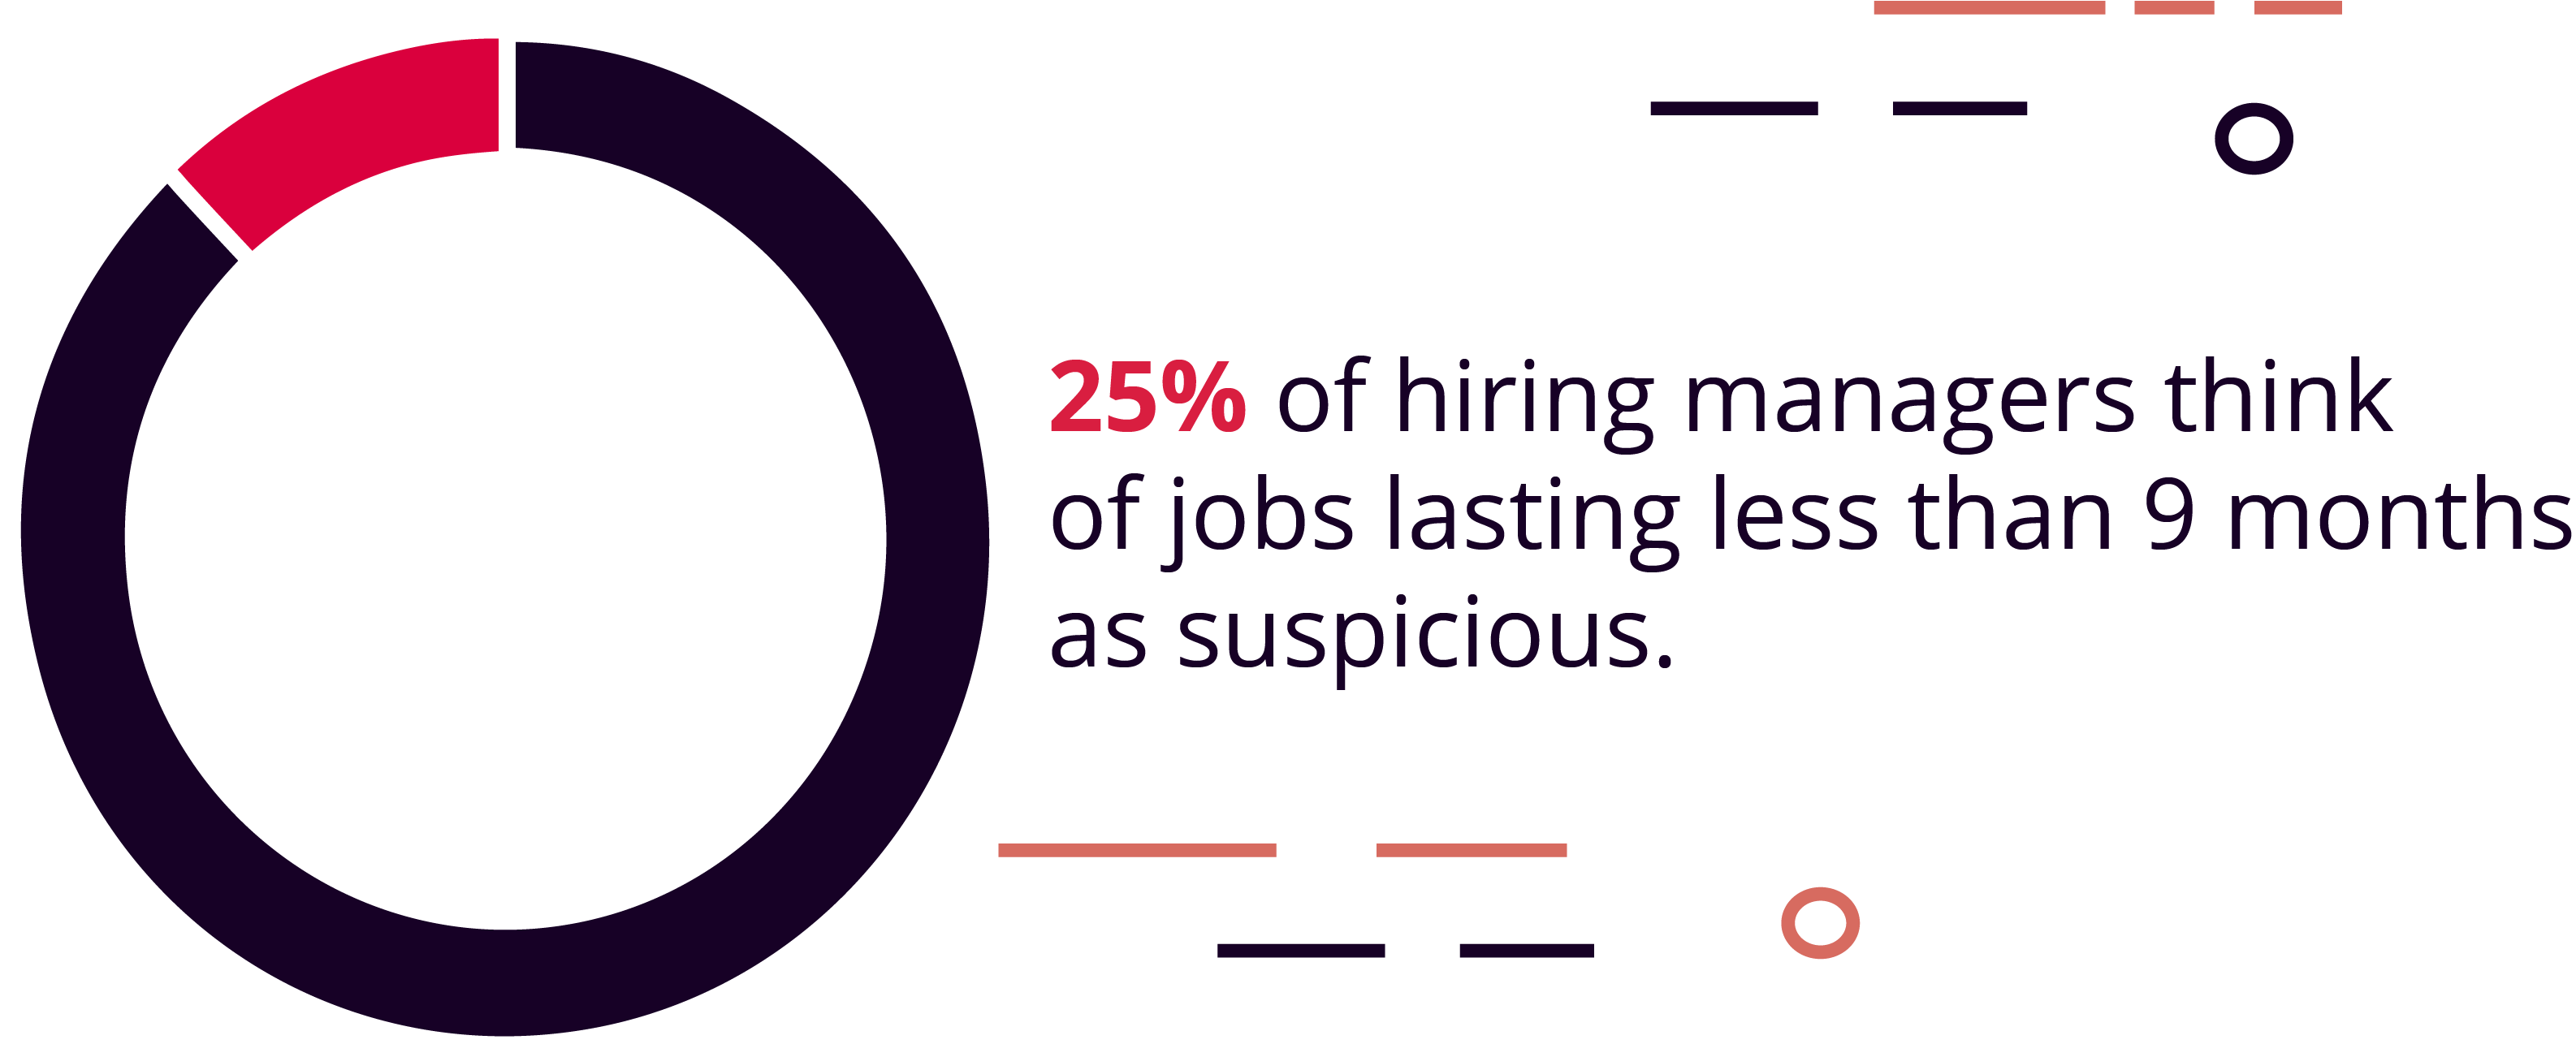 25% of Hiring Managers Look at Jobs Lasting Fewer Than 9 Months as Suspicious